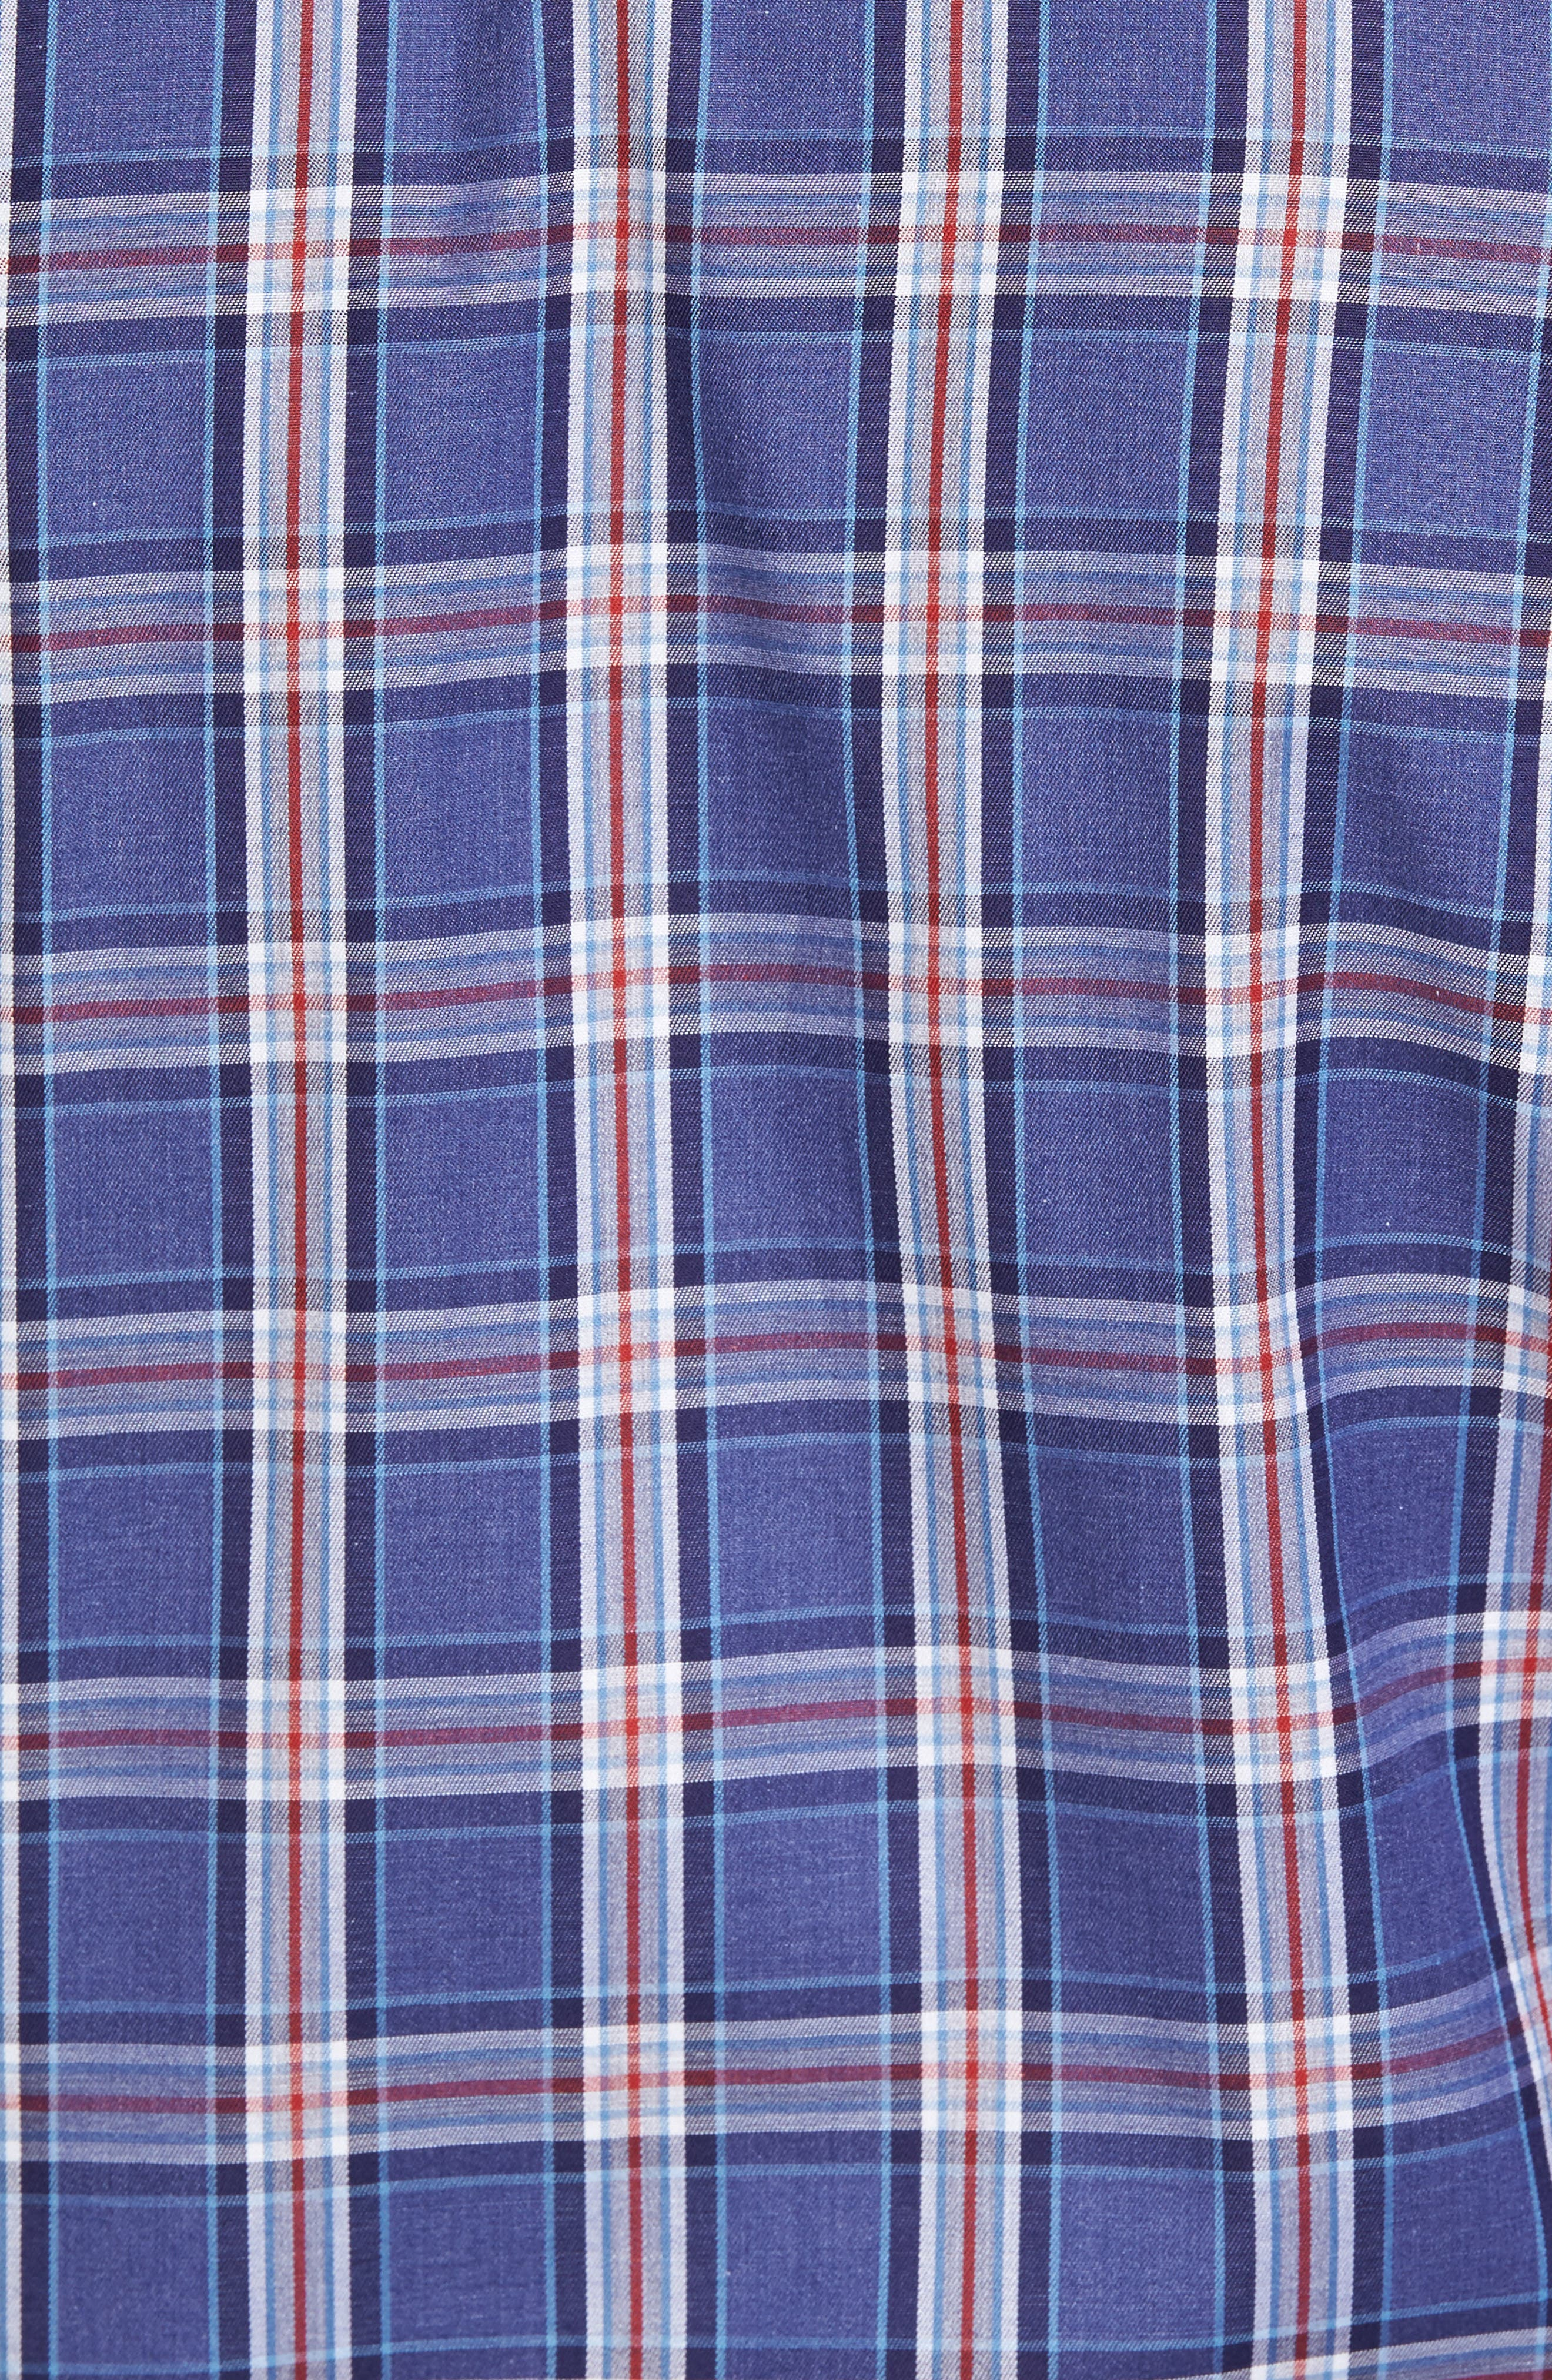 Paul&Shark Plaid Sport Shirt,                             Alternate thumbnail 5, color,                             400